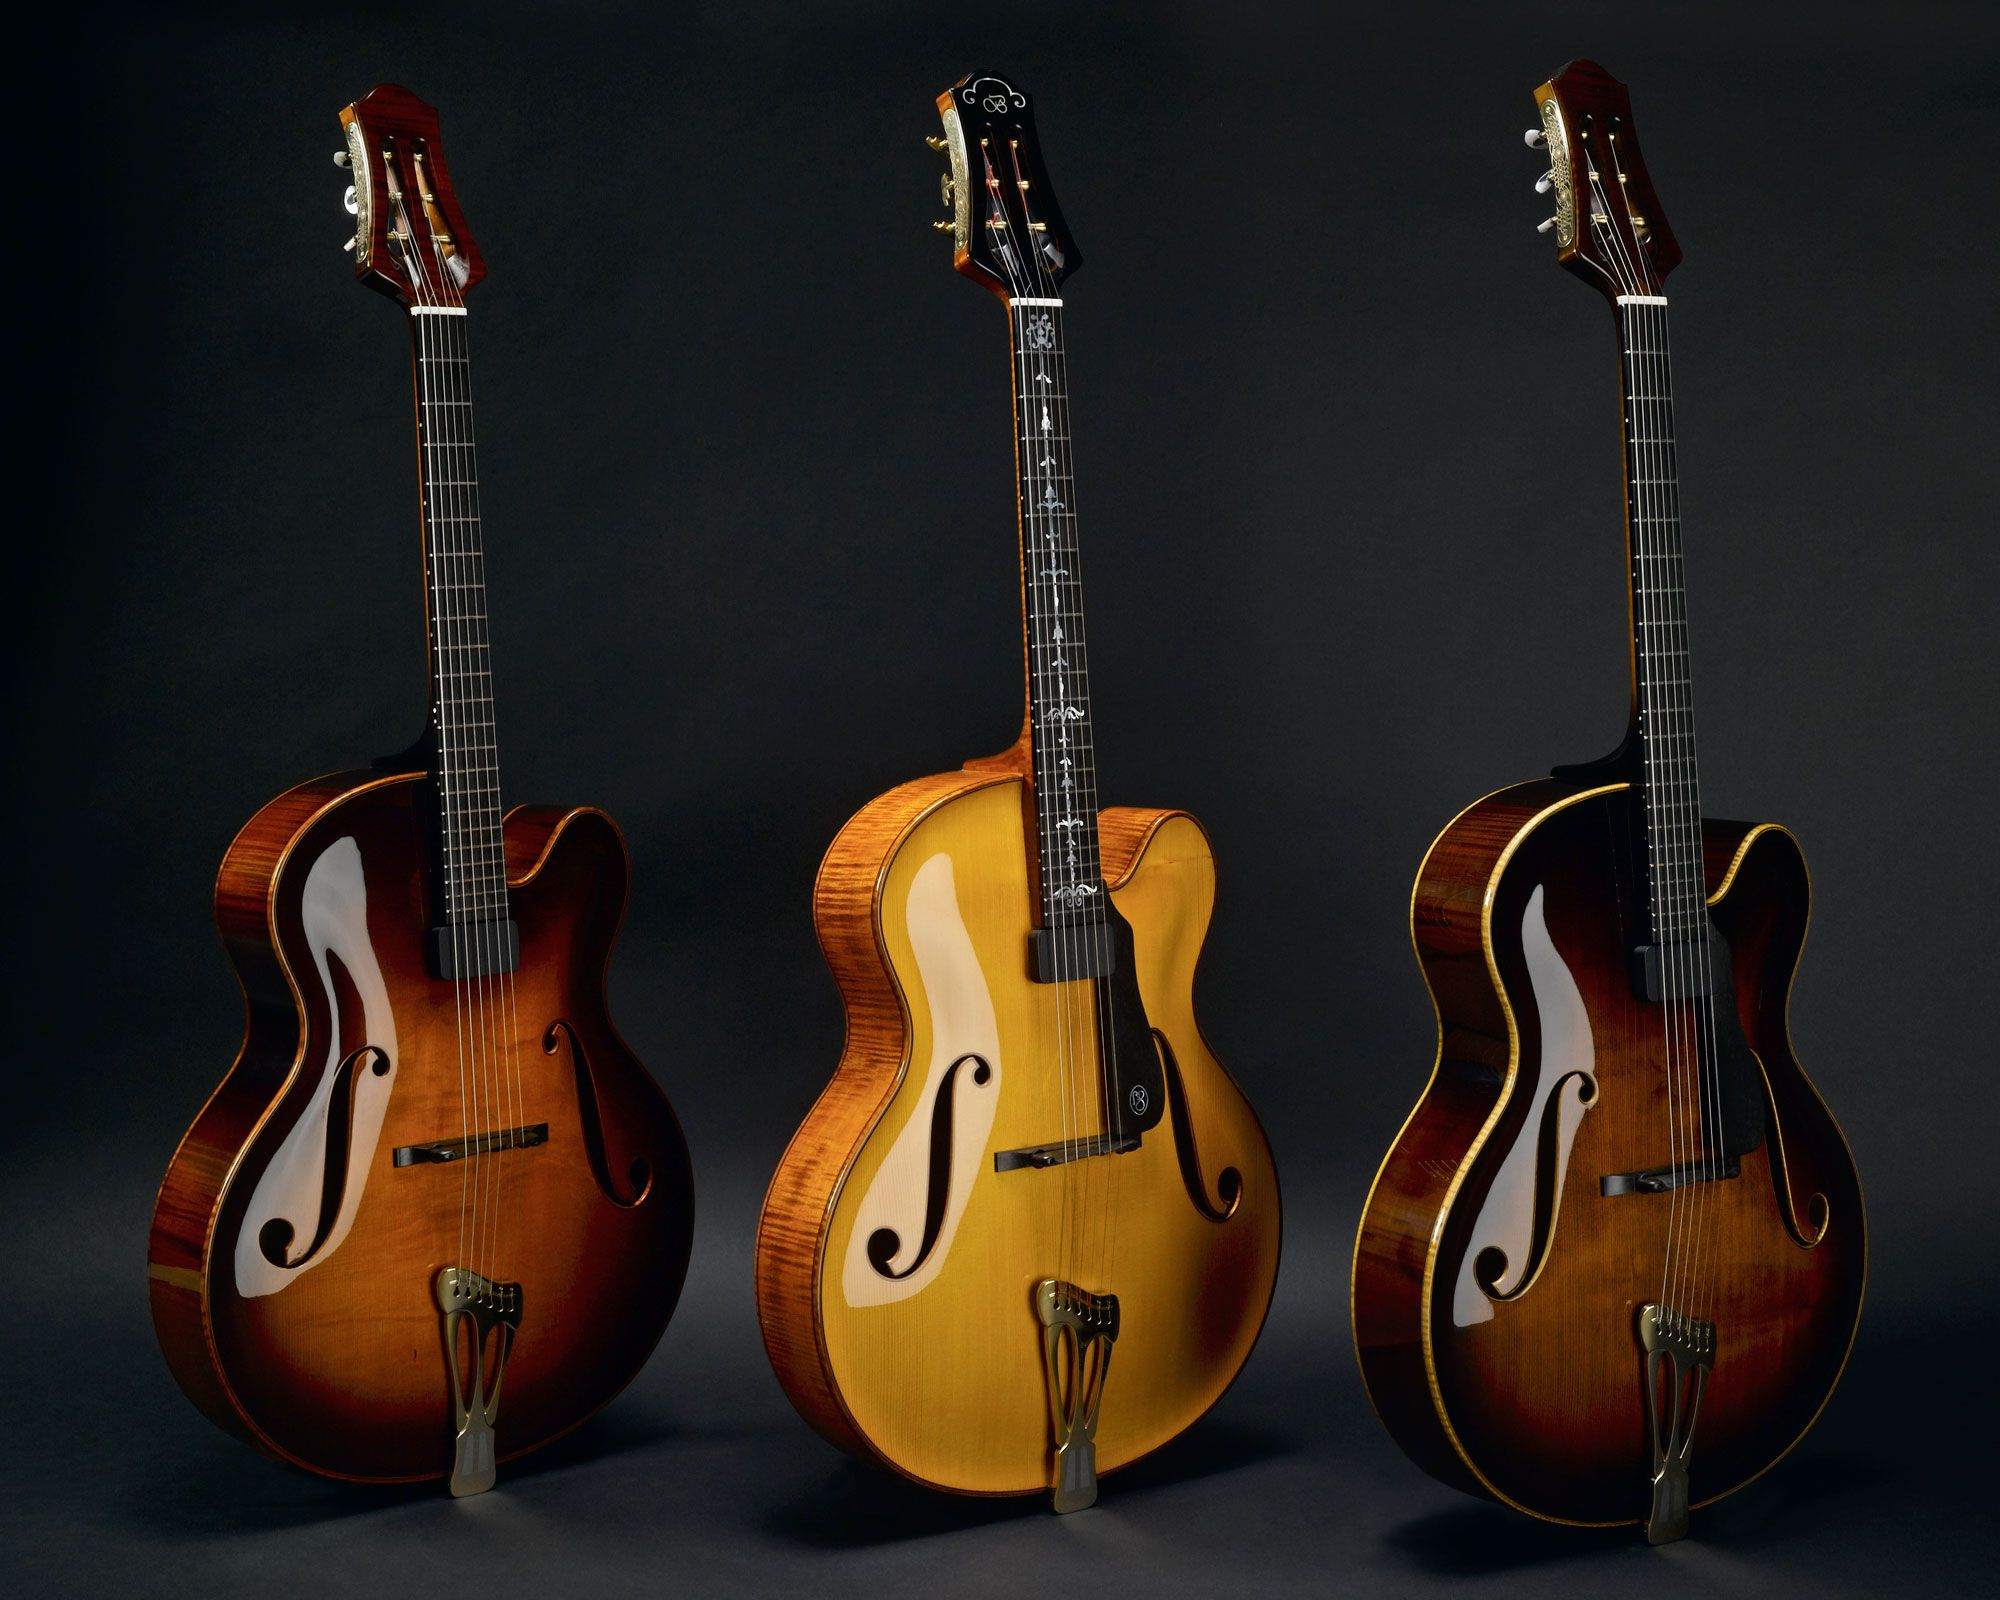 archtop jazz guitar the vienna archtop scharpach master guitars made in the netherlands. Black Bedroom Furniture Sets. Home Design Ideas